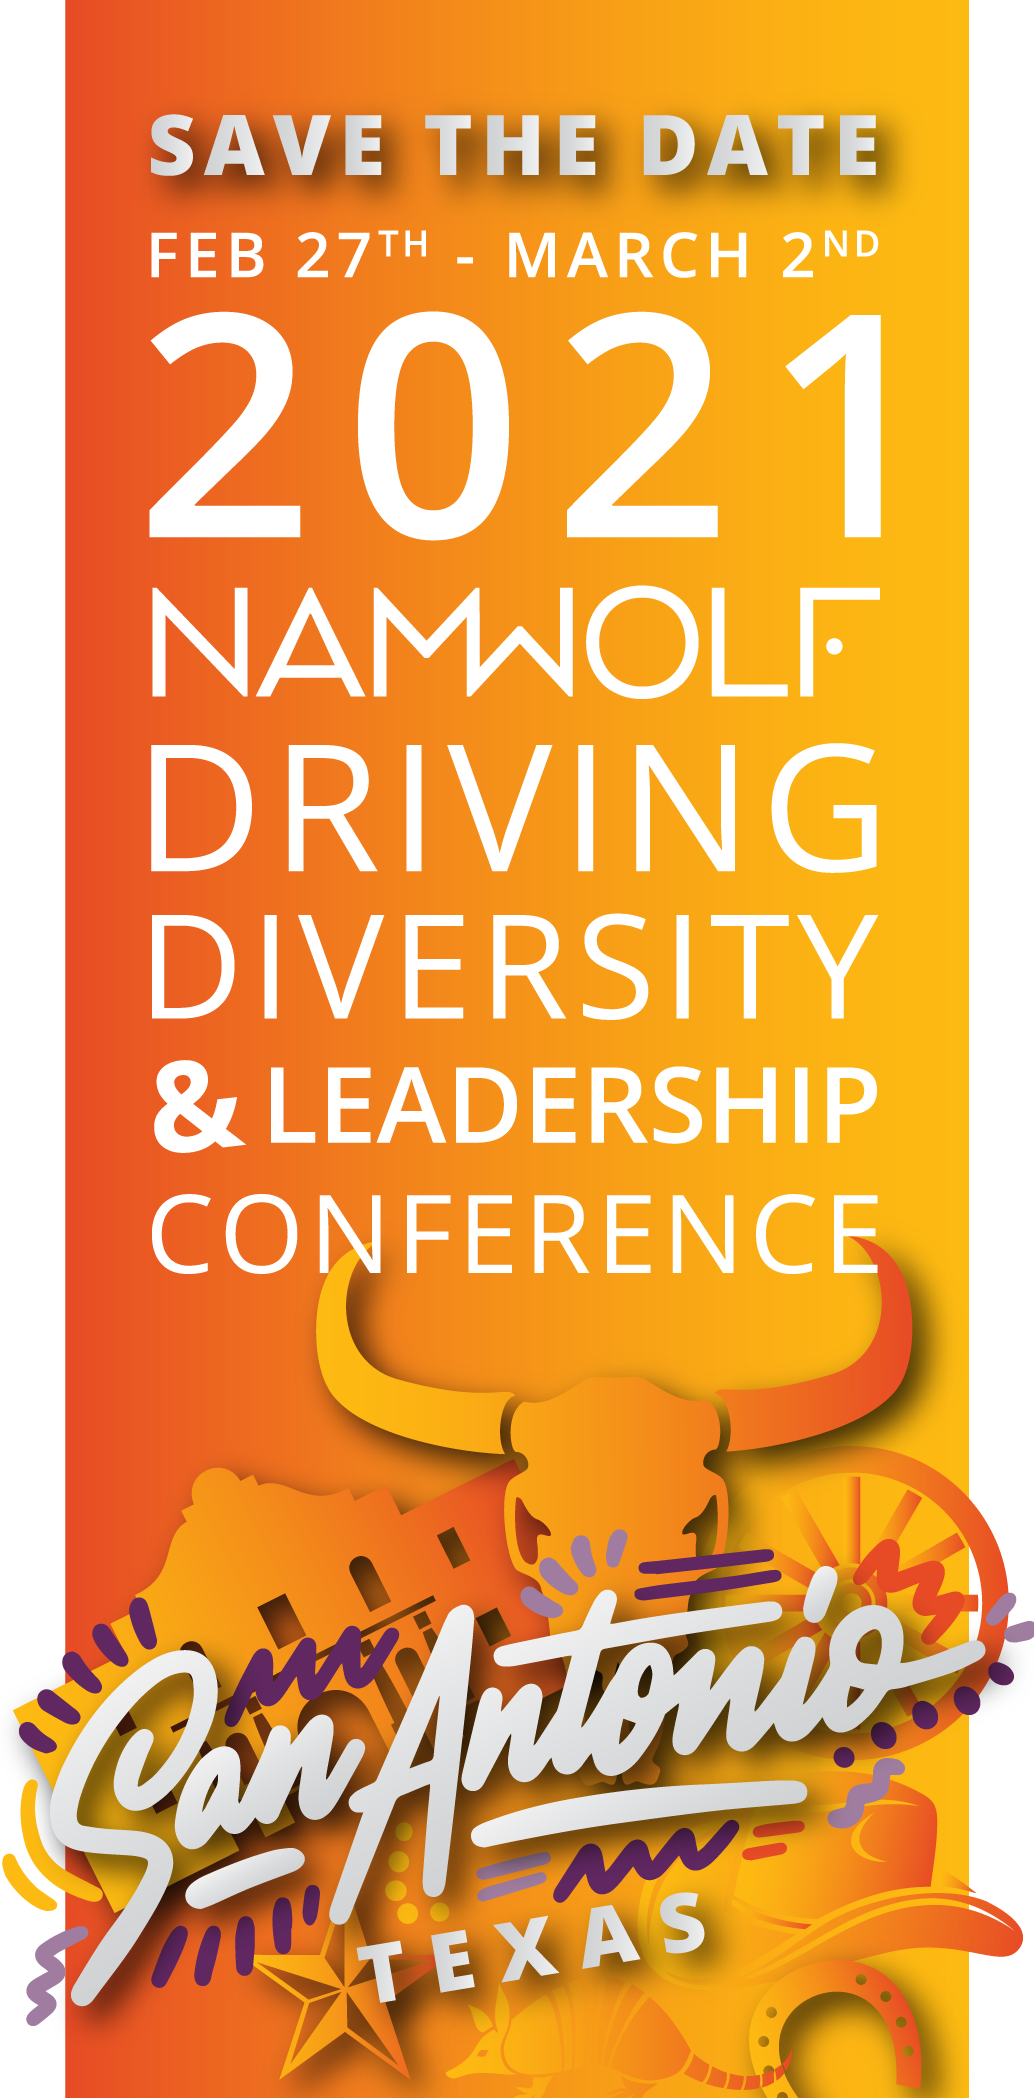 2021 Driving Diversity & Leadership Conference